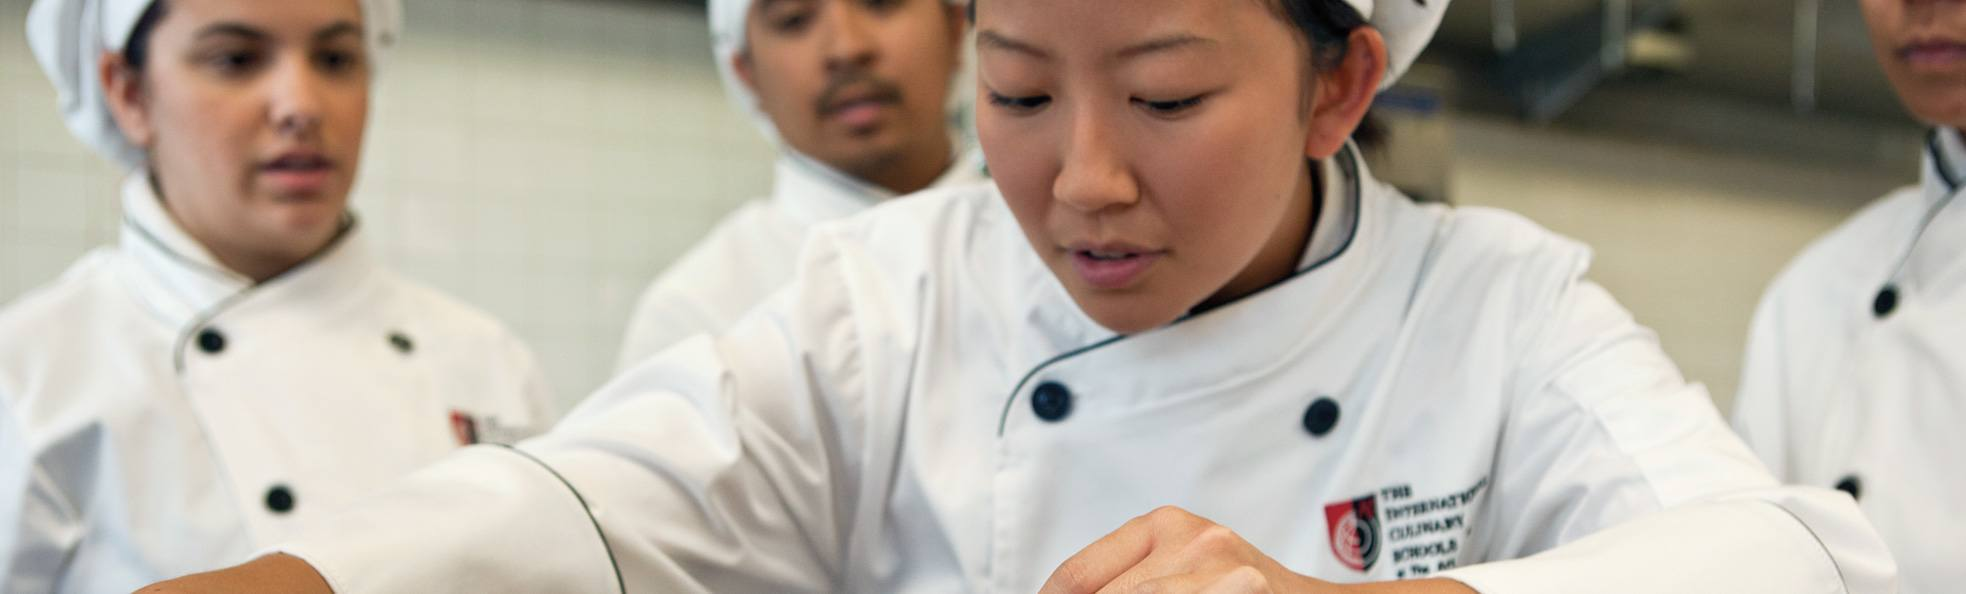 art institute essay for culinary Internationally esteemed as a school of art and design, the school of the art institute of chicago (saic) offers a comprehensive college education centered in the visual and related arts.